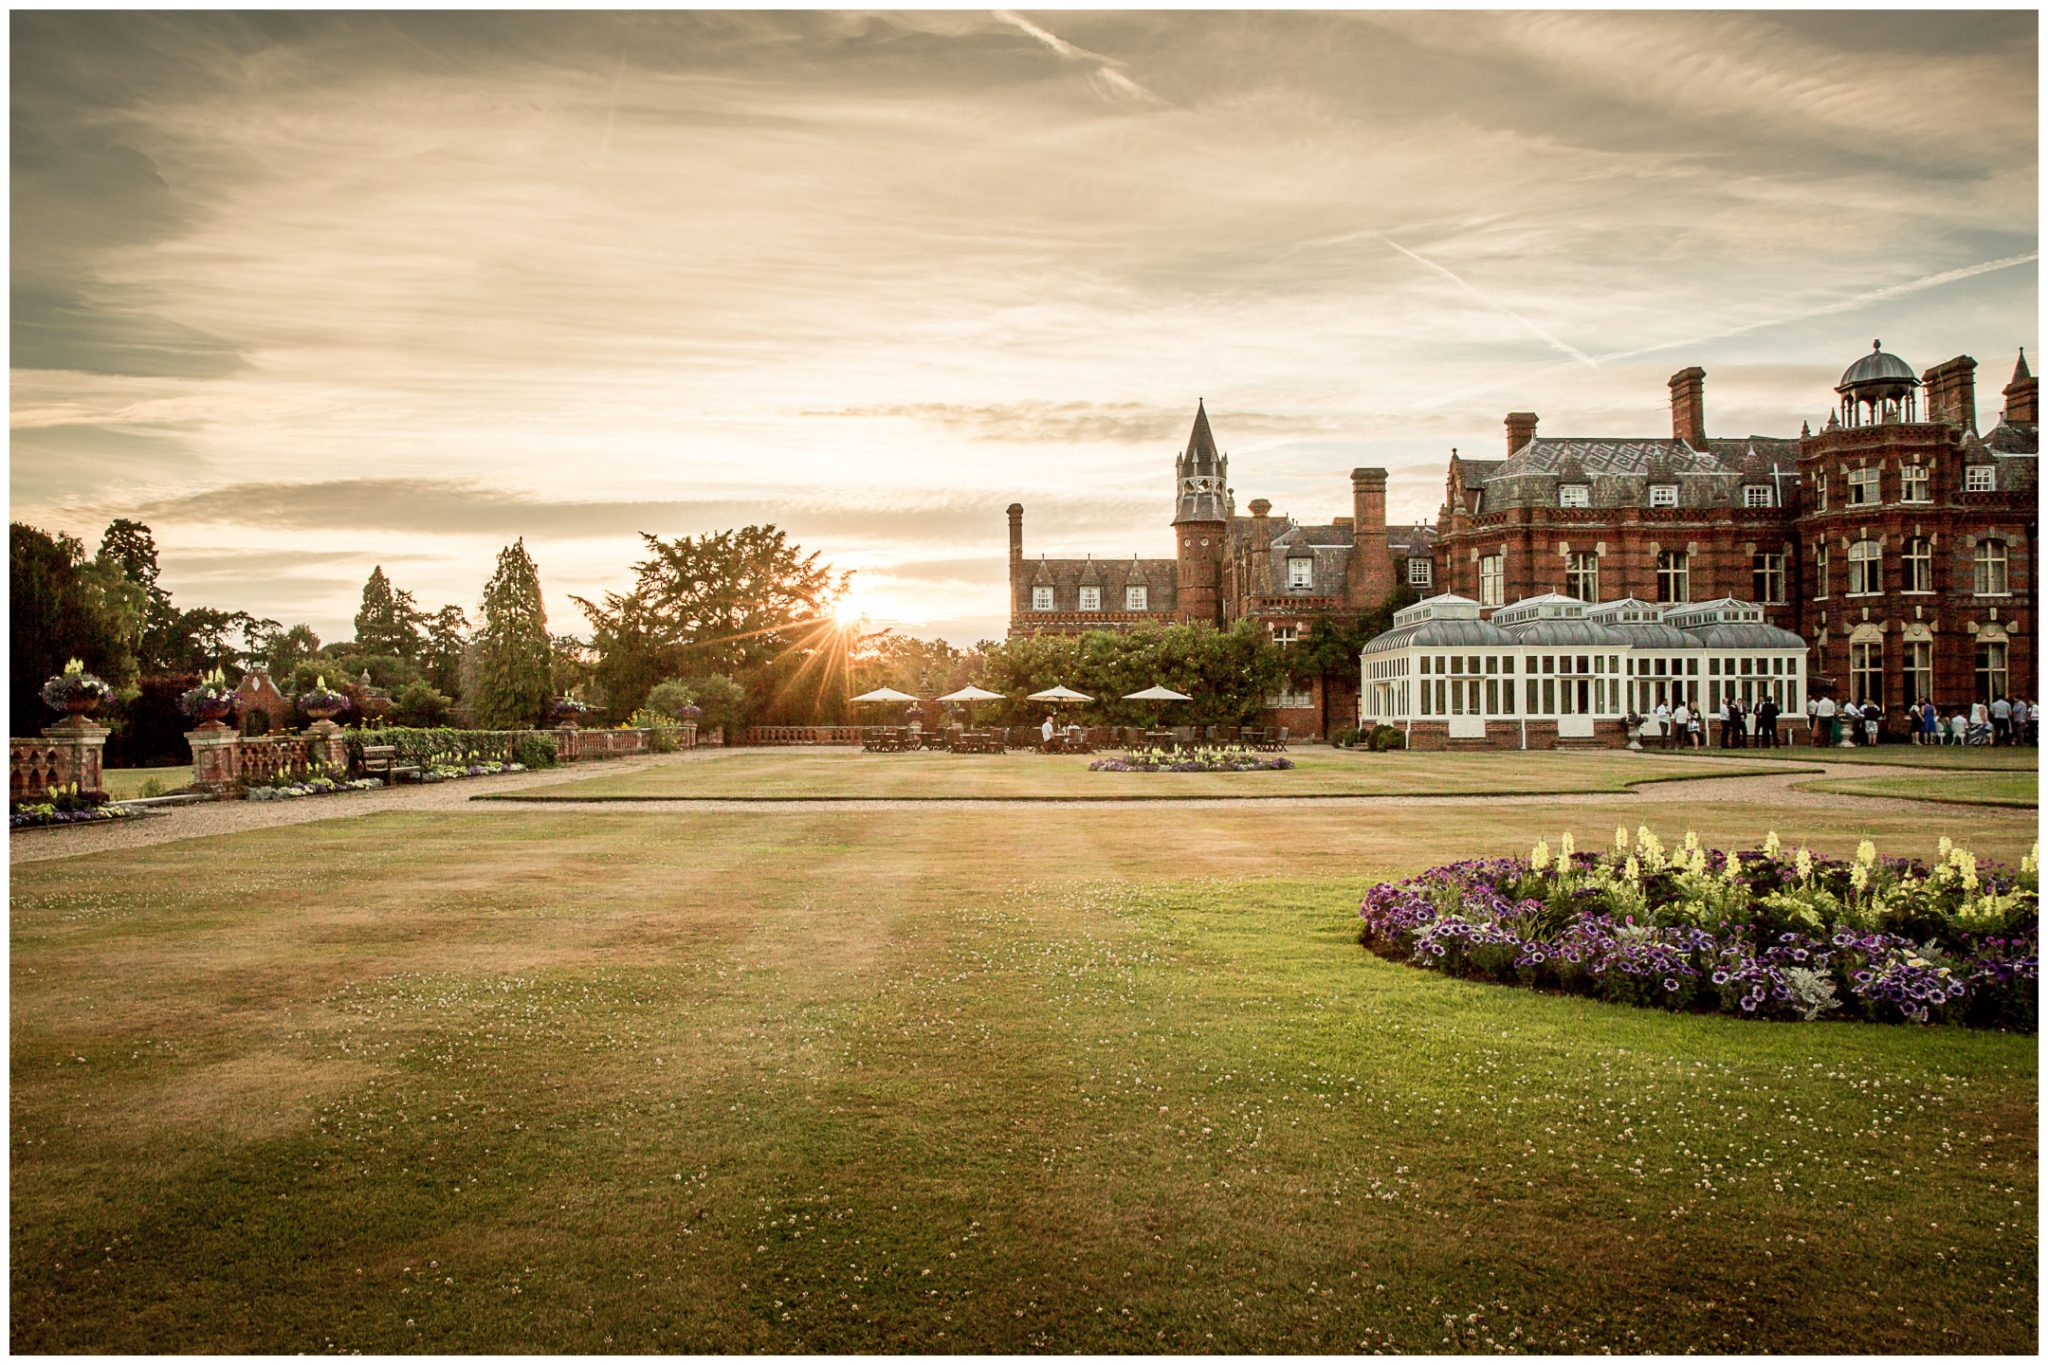 Sun sets behind the trees, showing the Elvetham hotel in the evening light